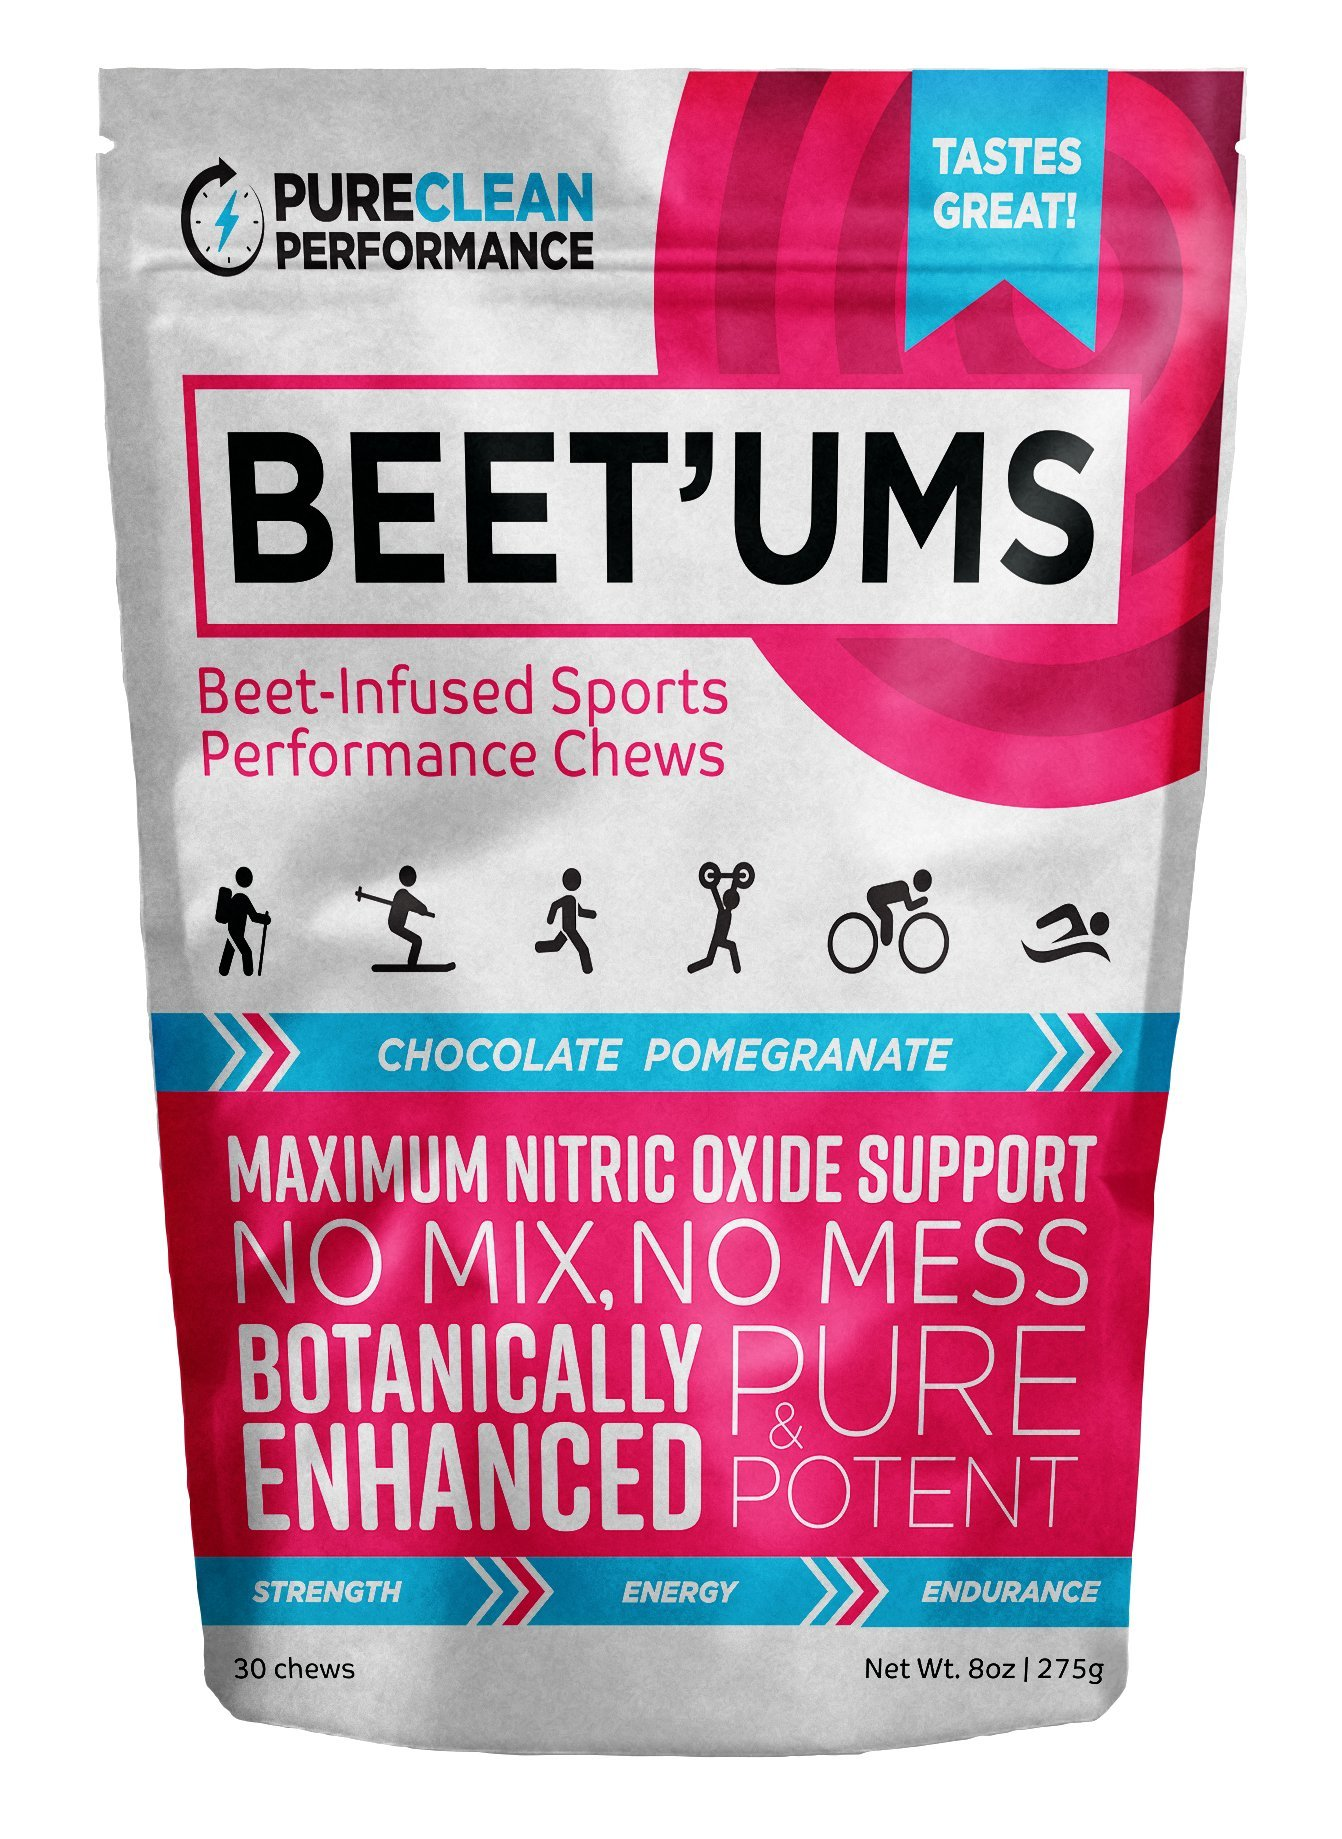 Beet'Ums Beet Infused Chocolate Pomegranate Performance Chews – PureClean Performance Super Beets– Super Concentrated Fermented Beet Juice Powder